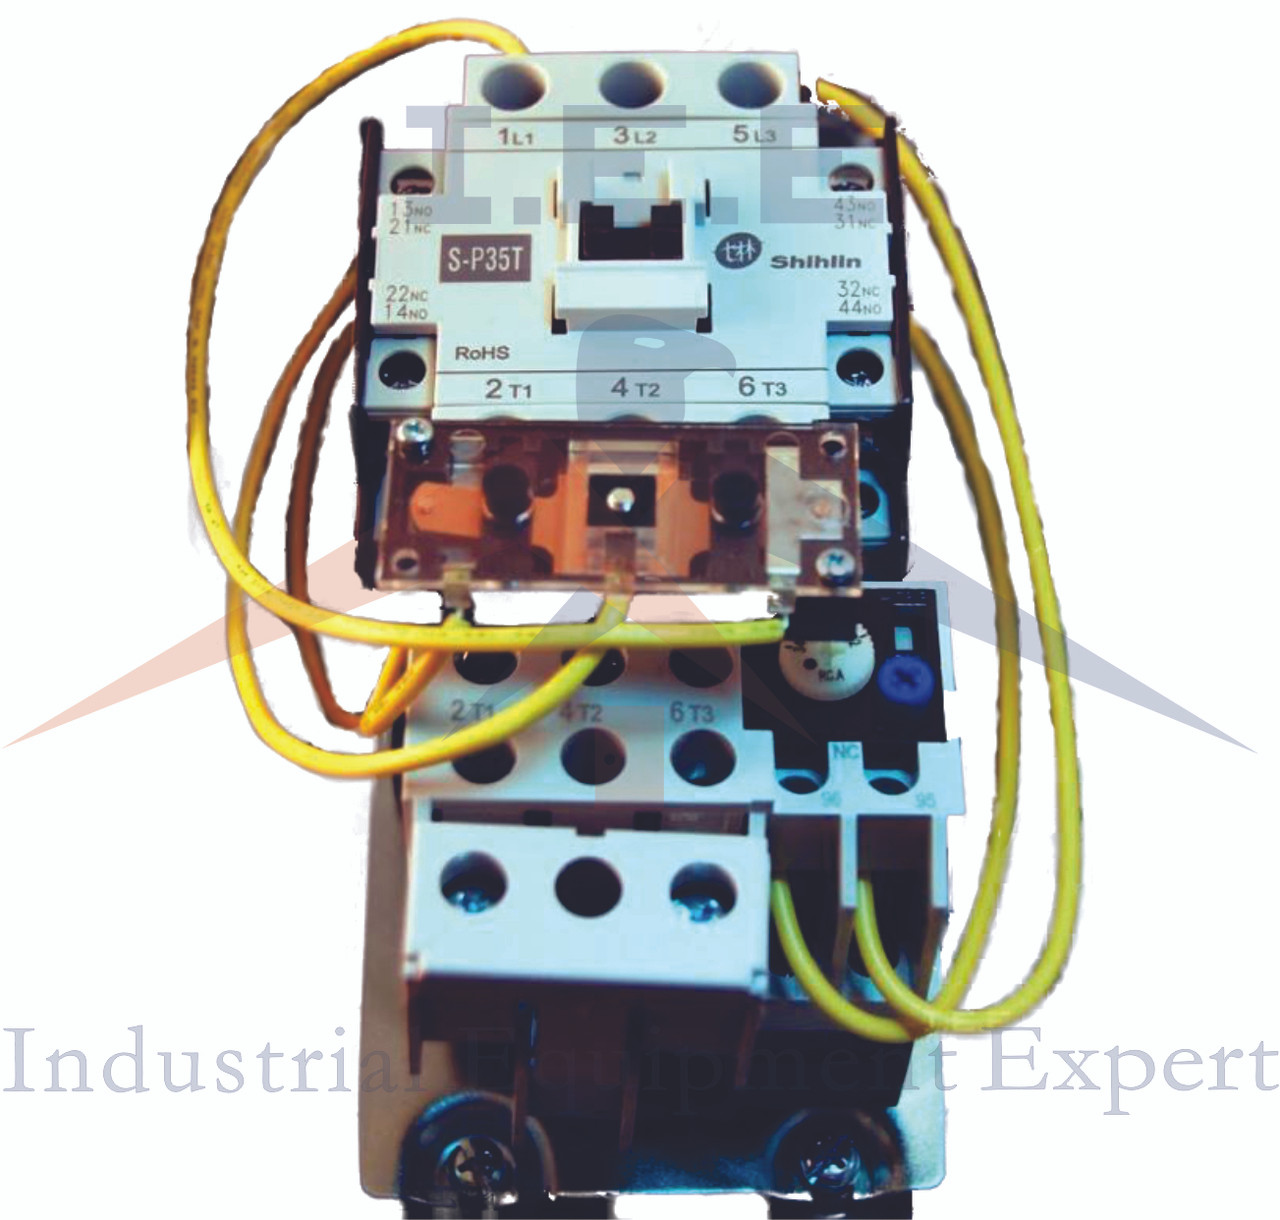 hight resolution of  electric motor starter wiring 2 5hp single phase 230v 34amp on off button magnetic motor startera 5